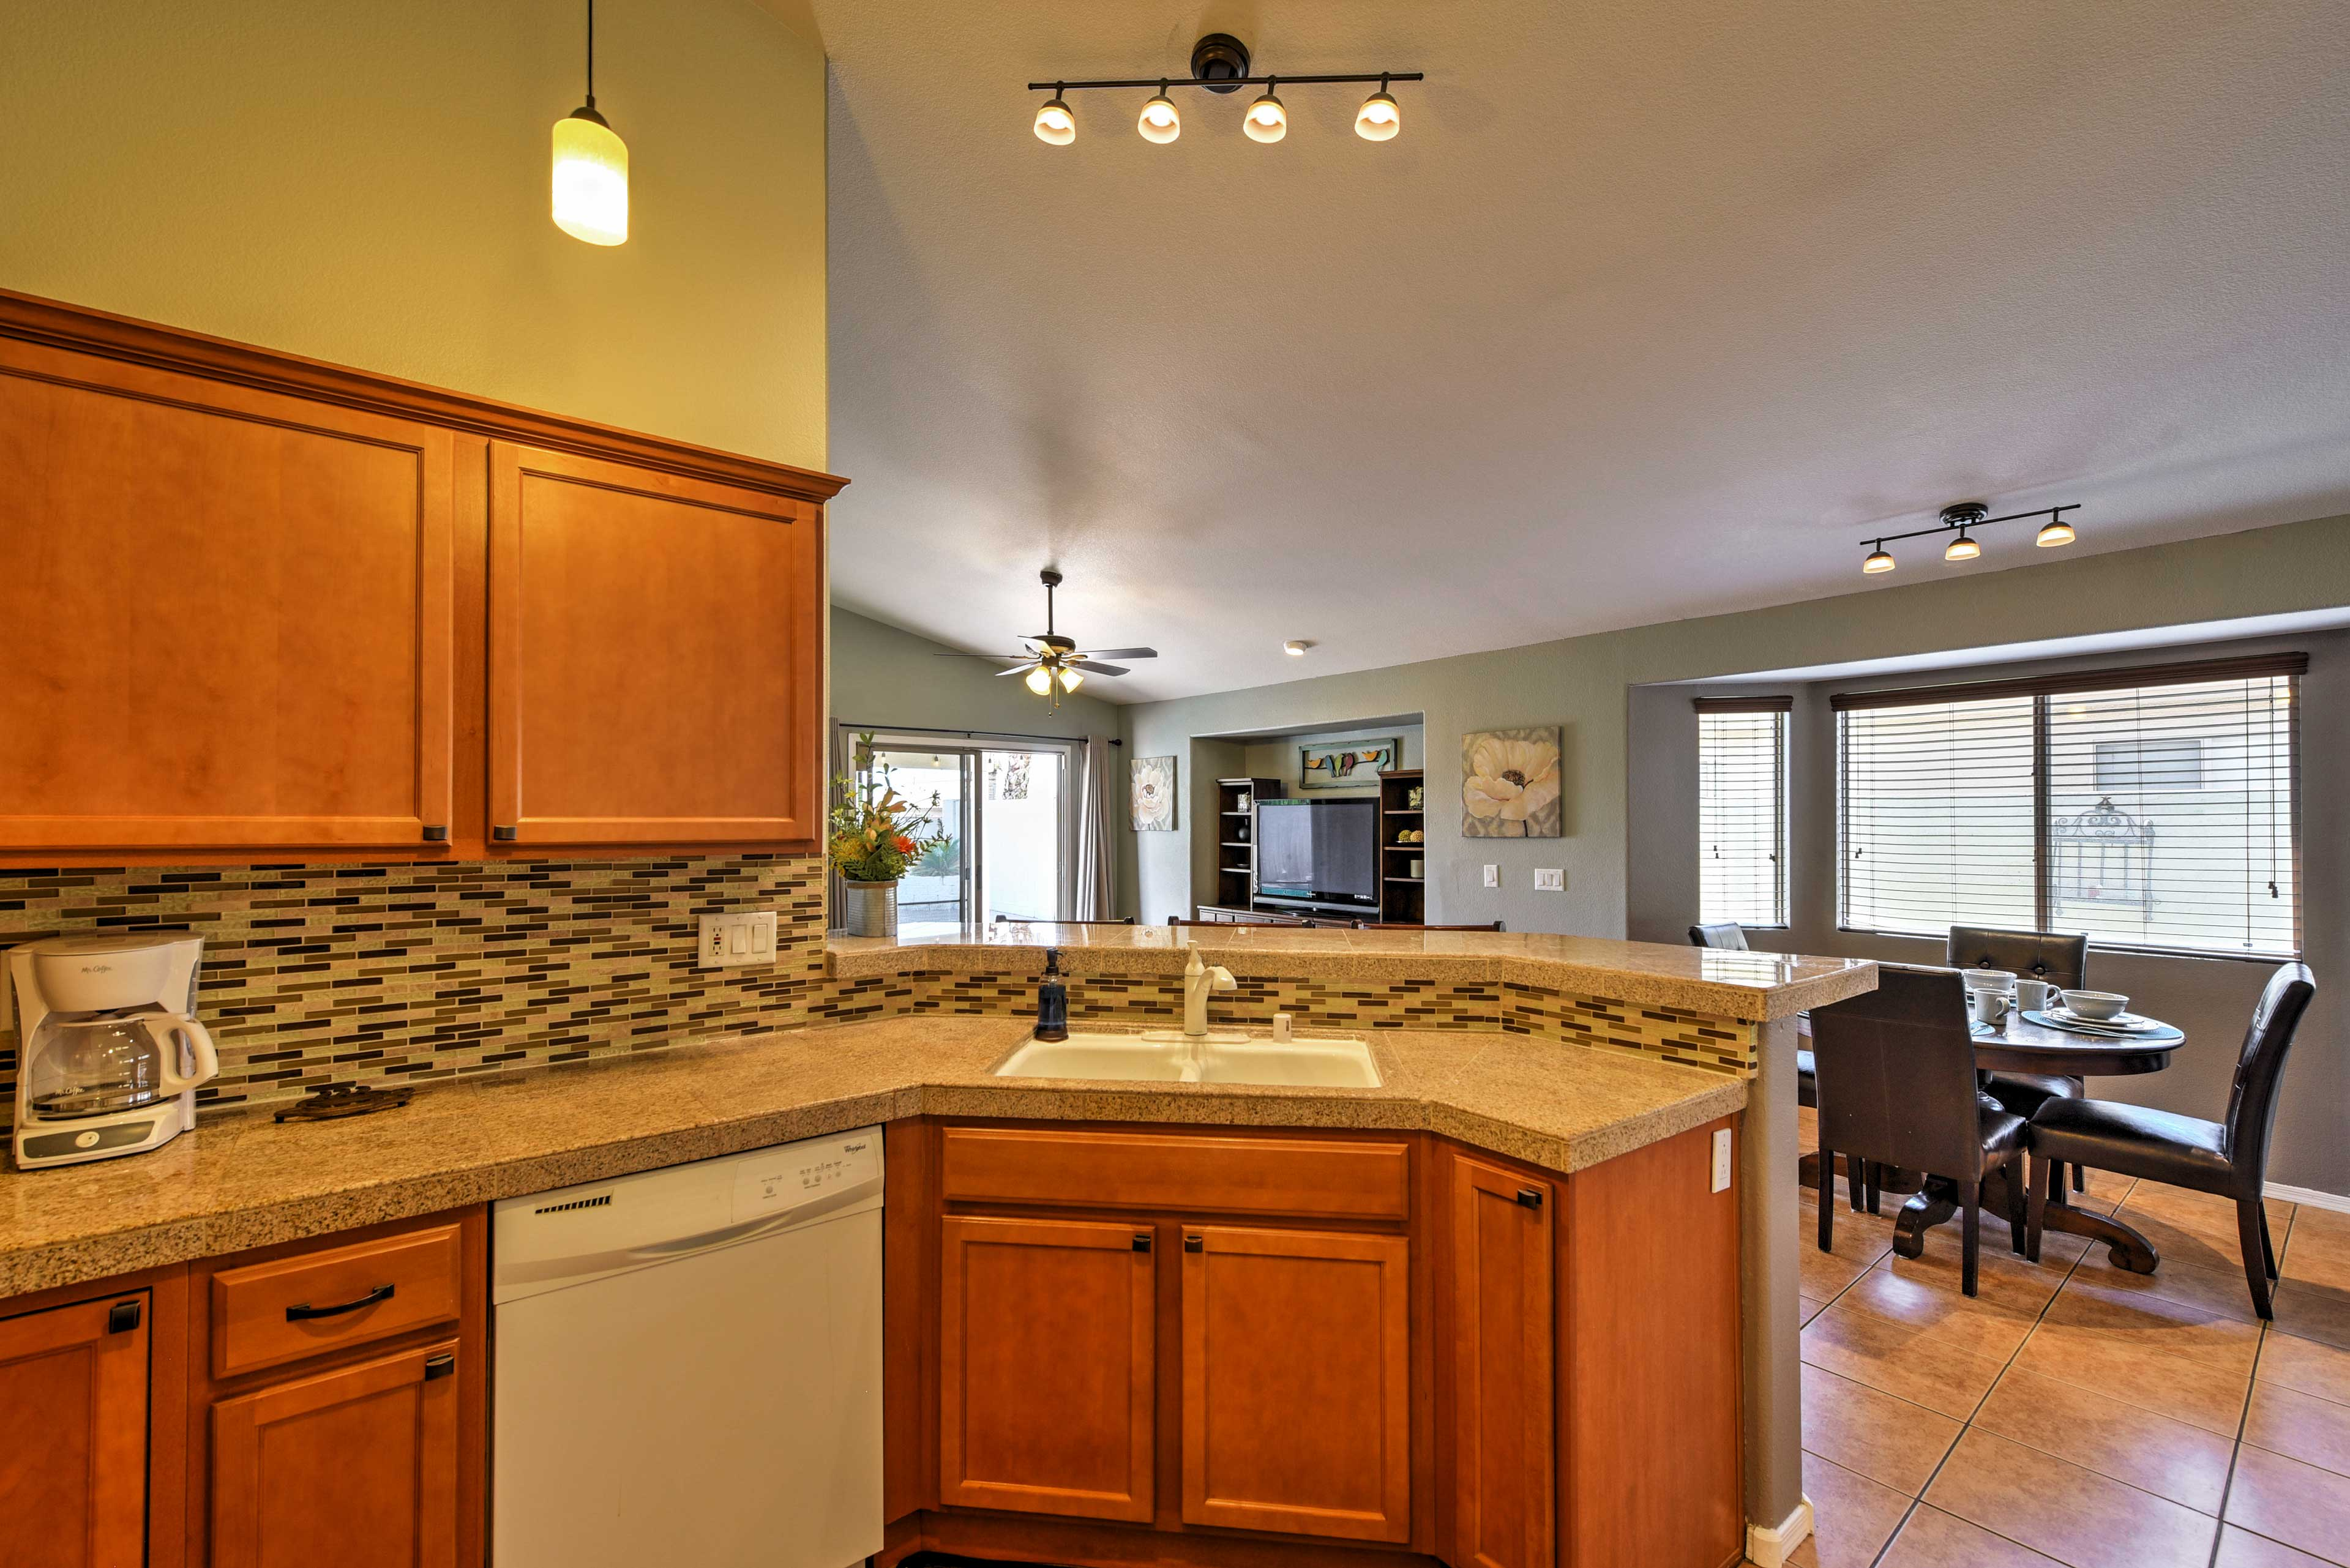 The home's kitchen features granite counters, and modern appliances.